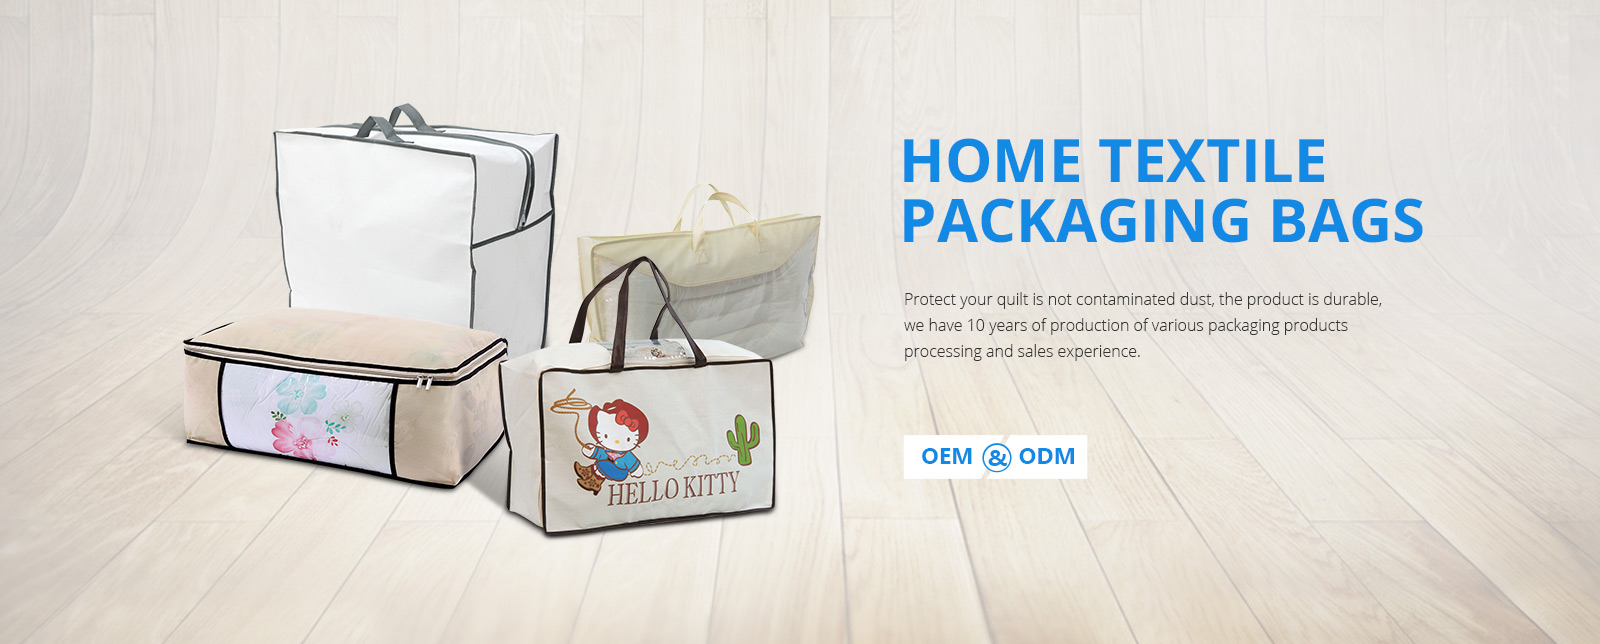 Home textile packaging bags